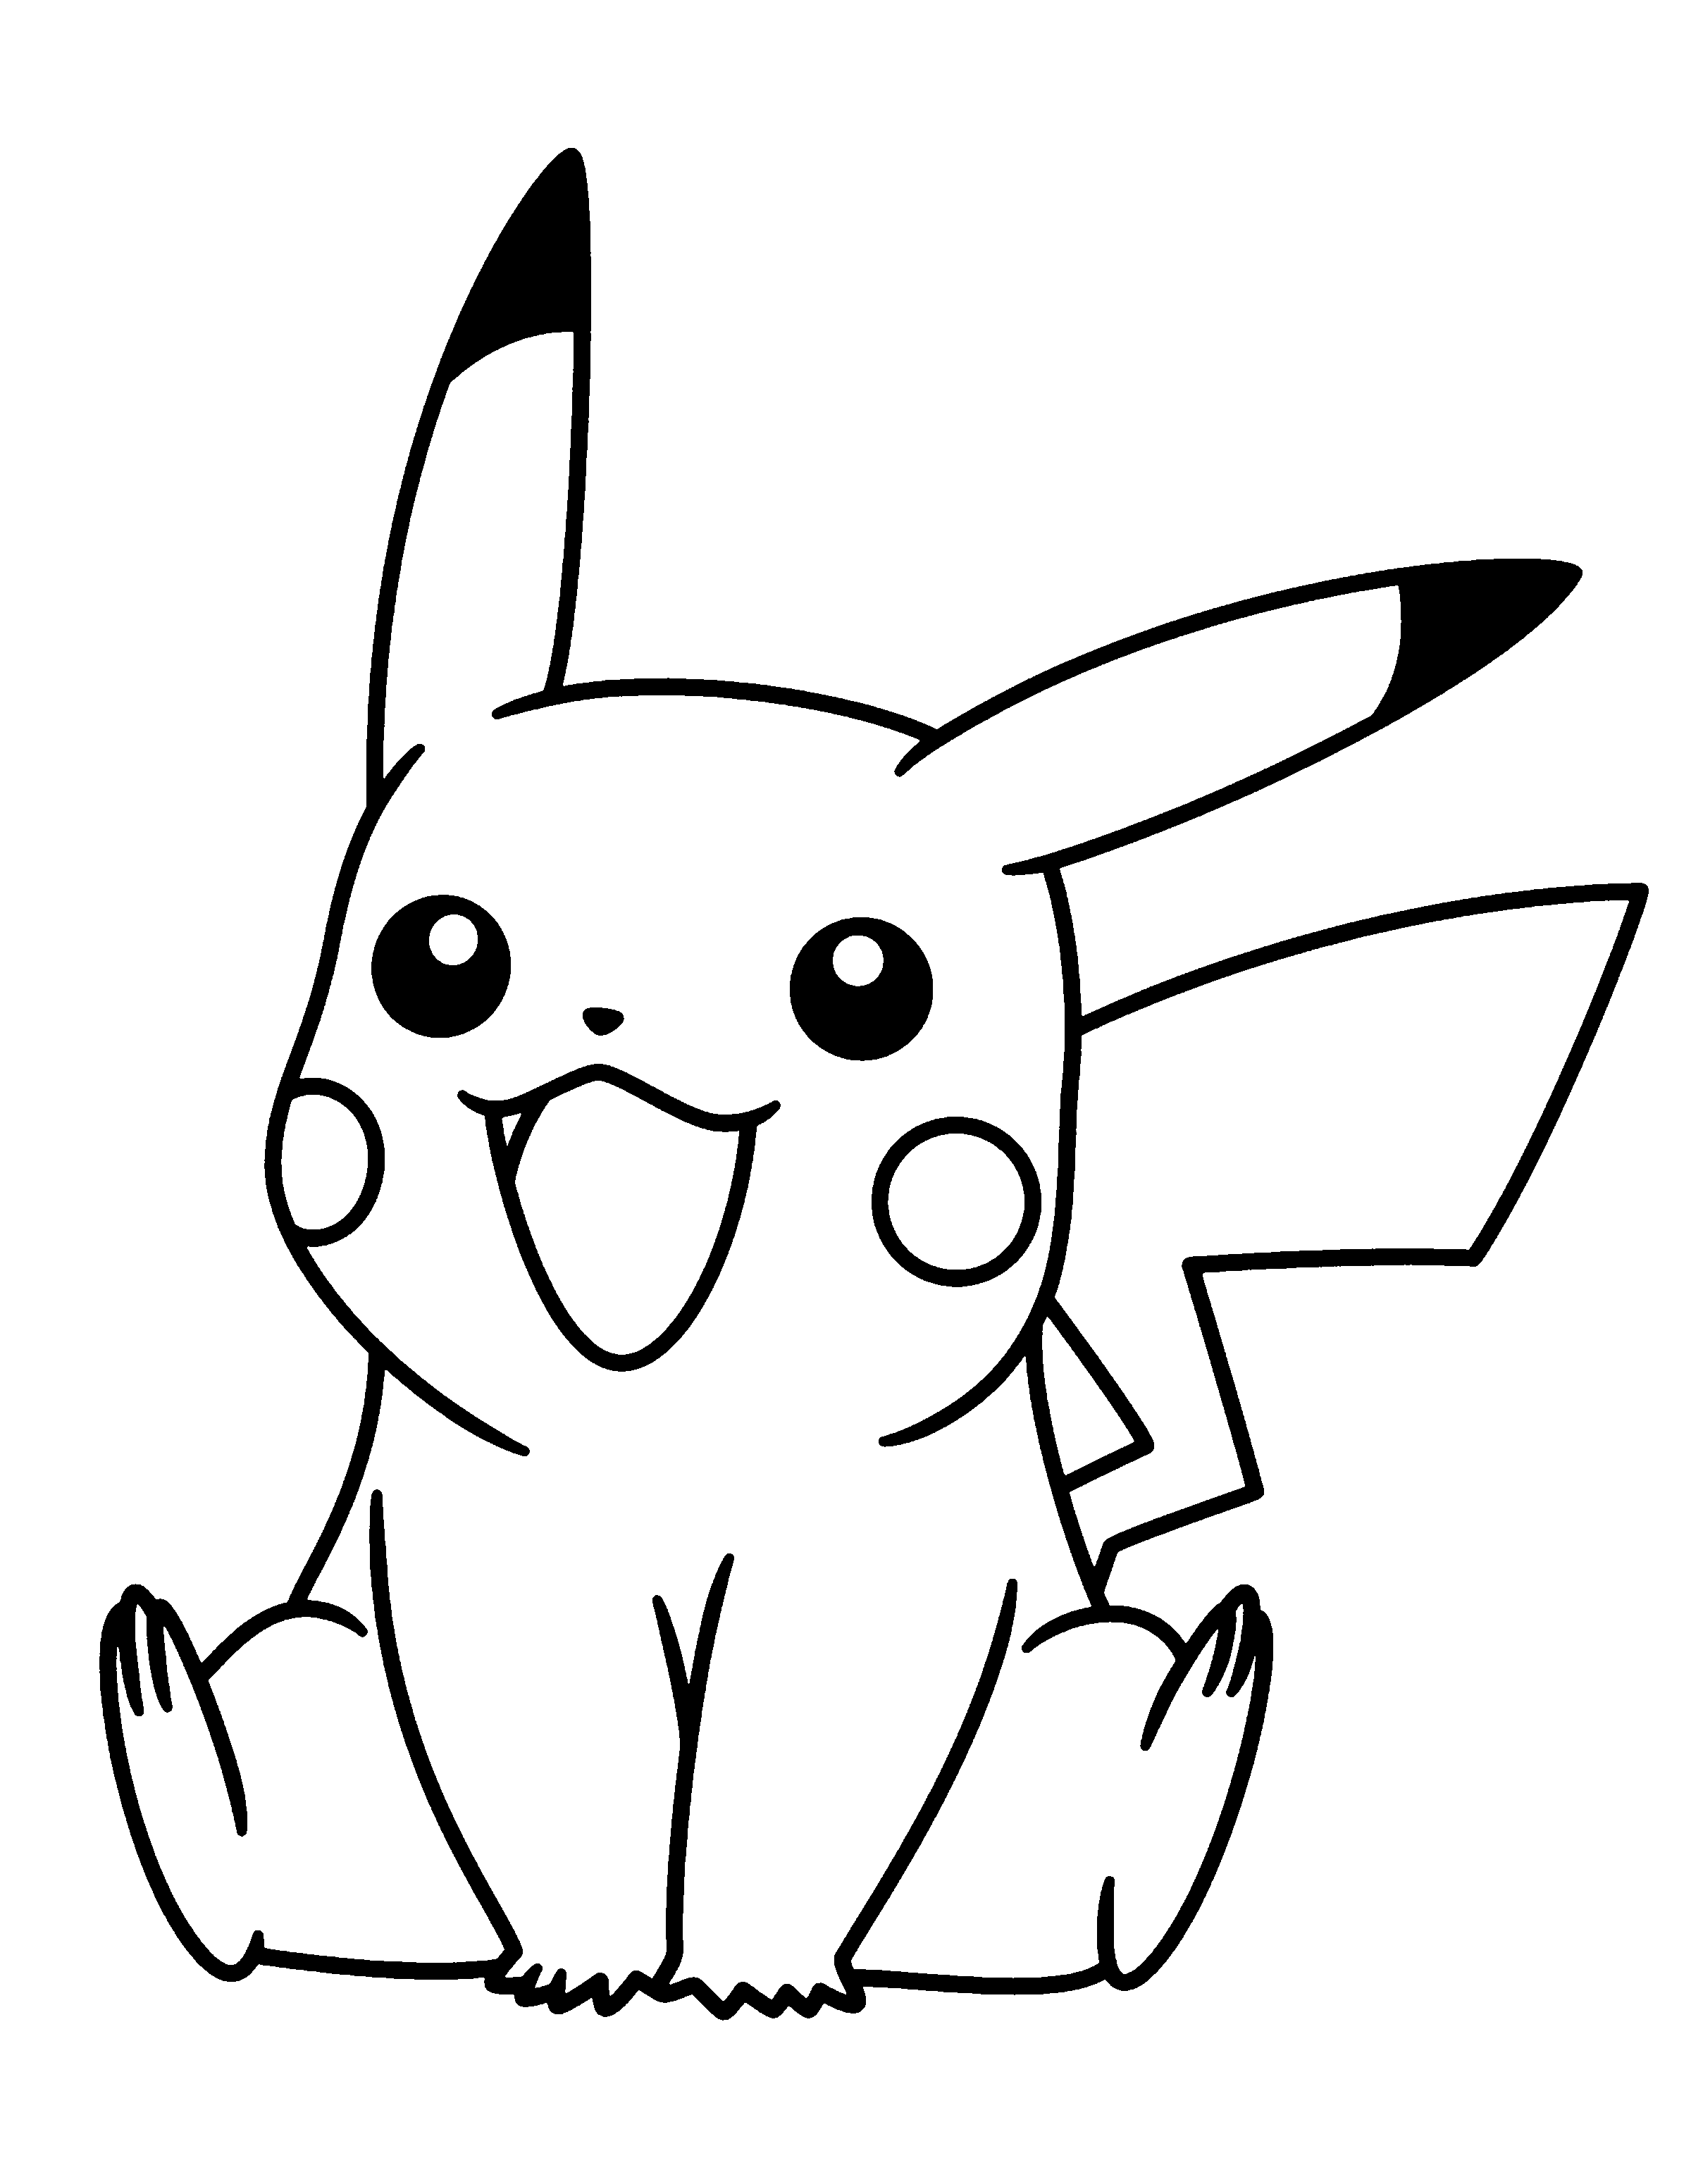 Pikachu Pokemon Coloring Pages Adult Coloring Book Pages